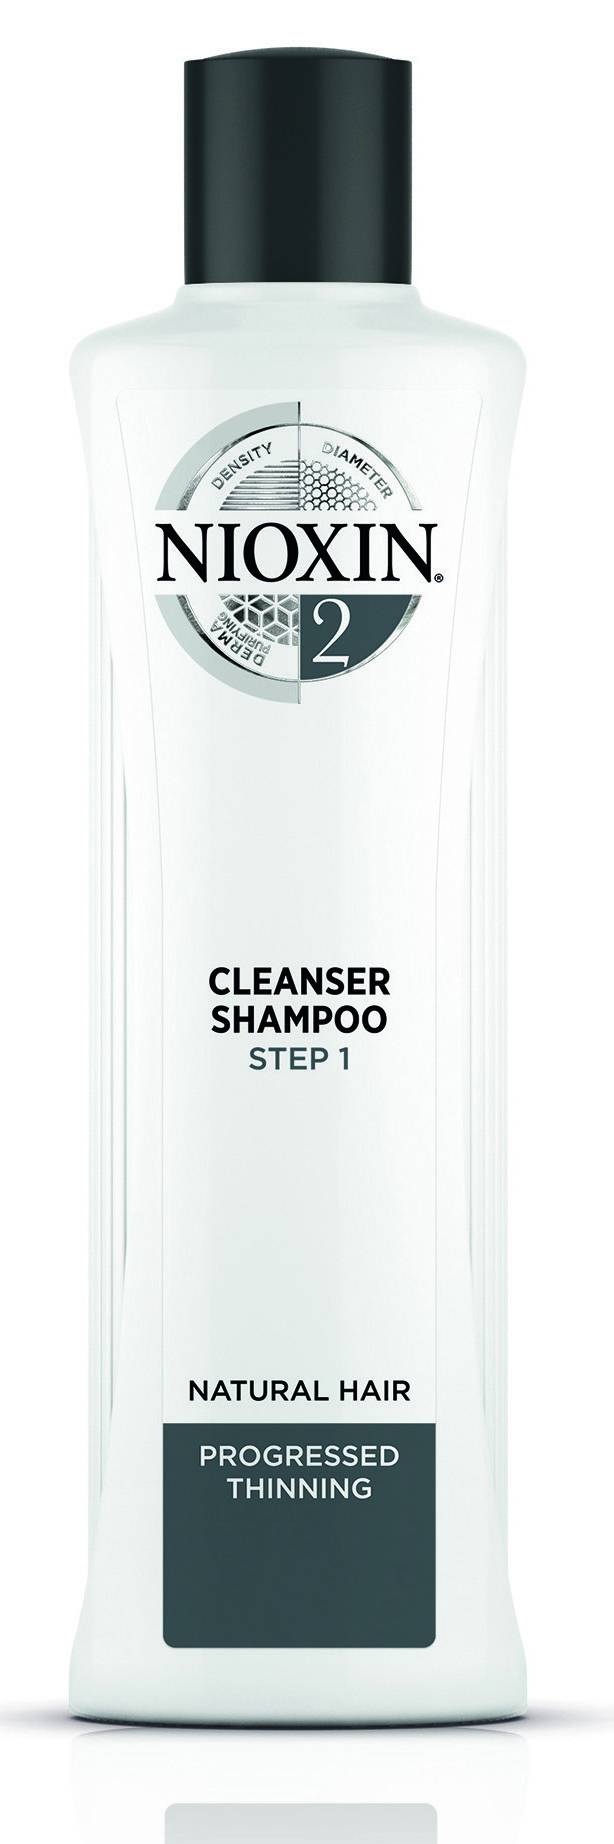 Nioxin System 2 Cleanser for Fine Hair 070018007117